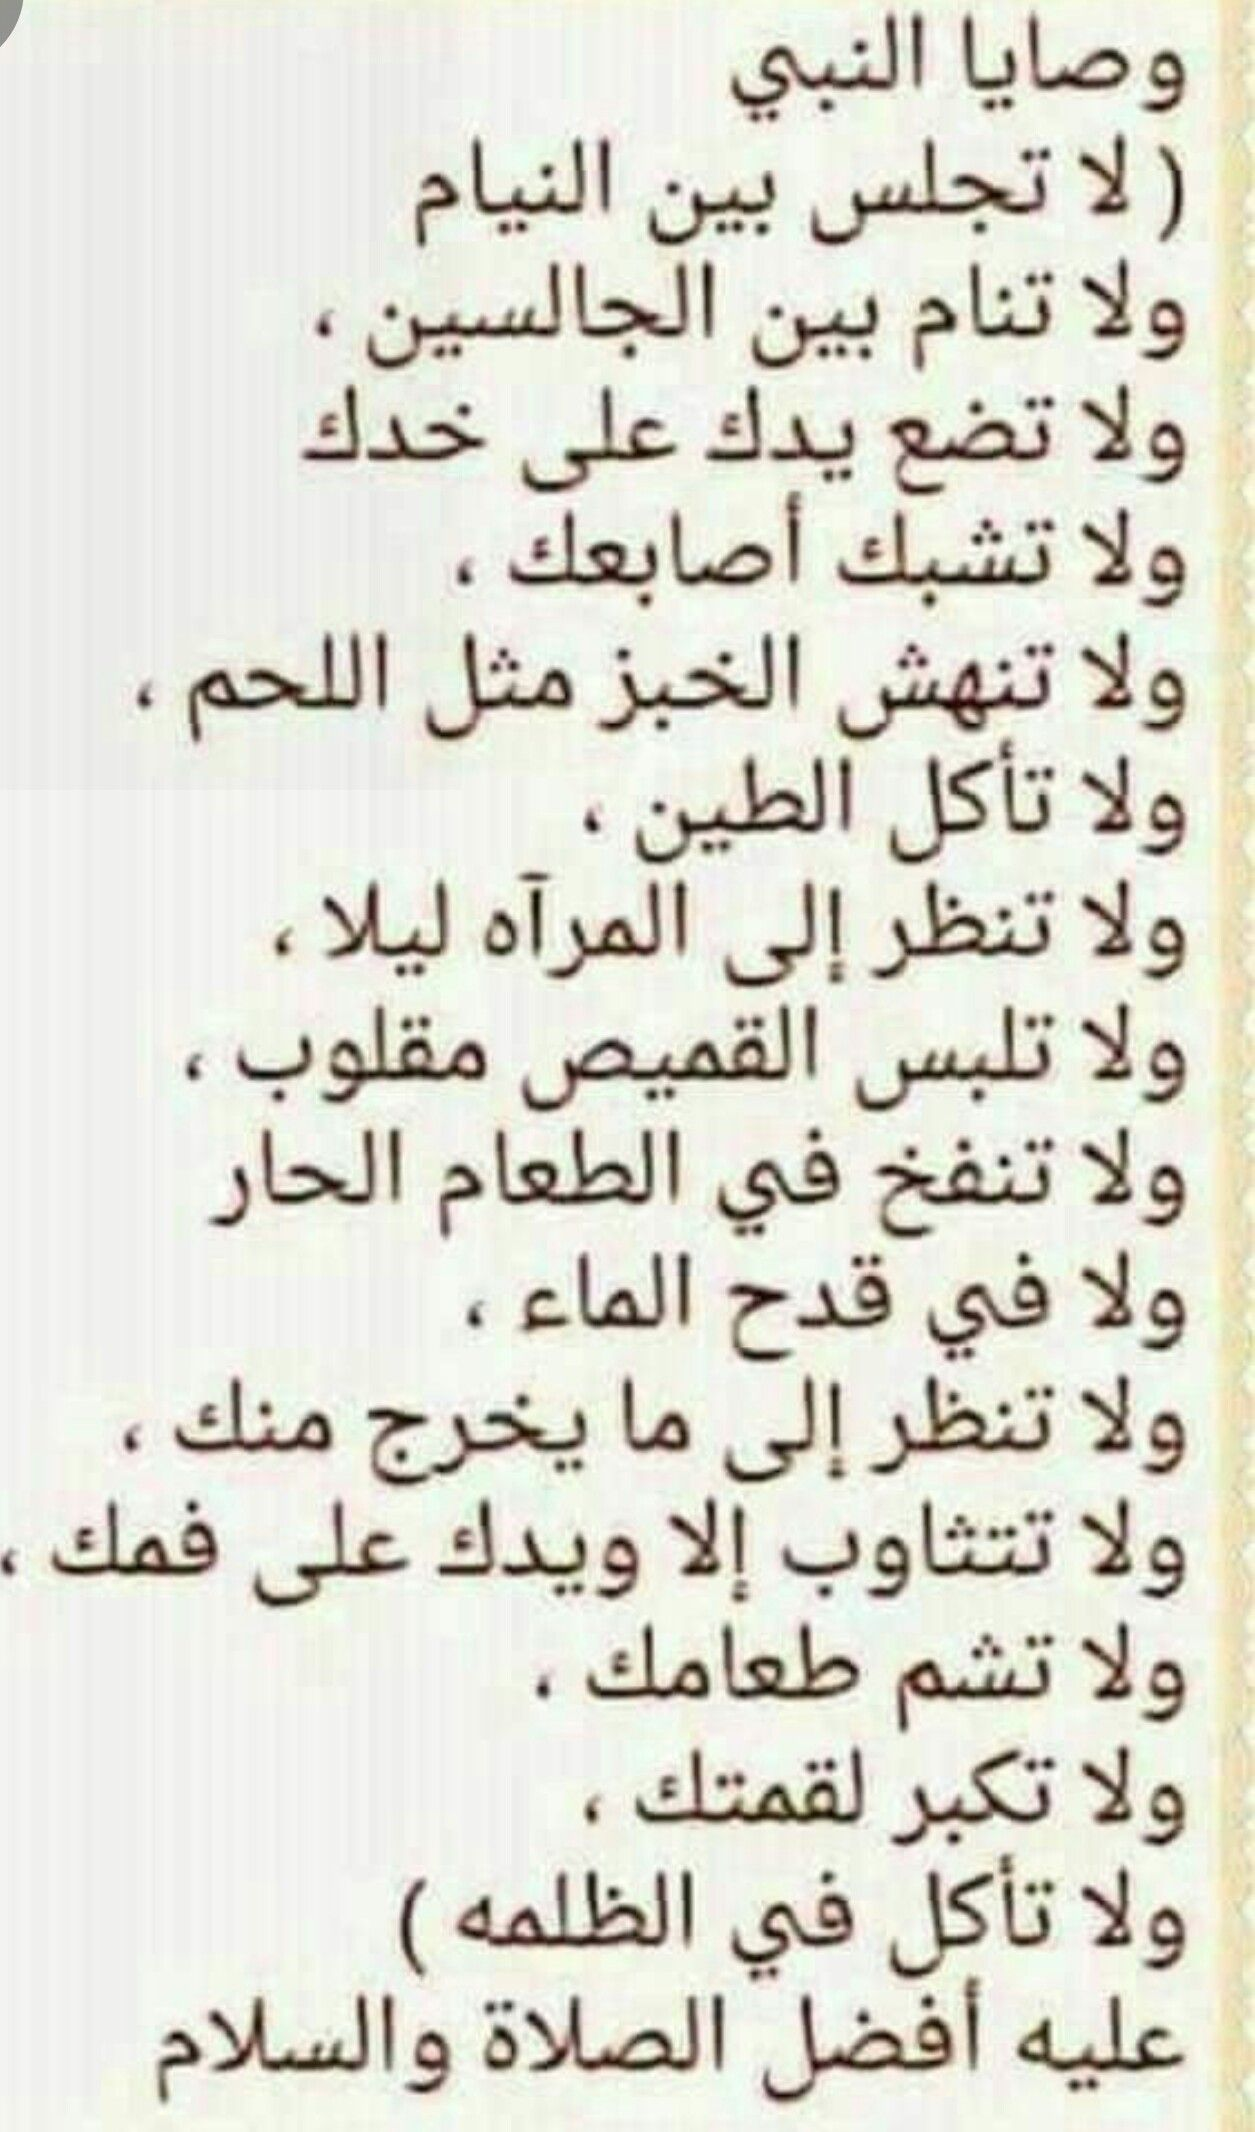 Pin By Kenzy Maro On مختارات دينيه Islamic Love Quotes Islamic Phrases Islam Facts